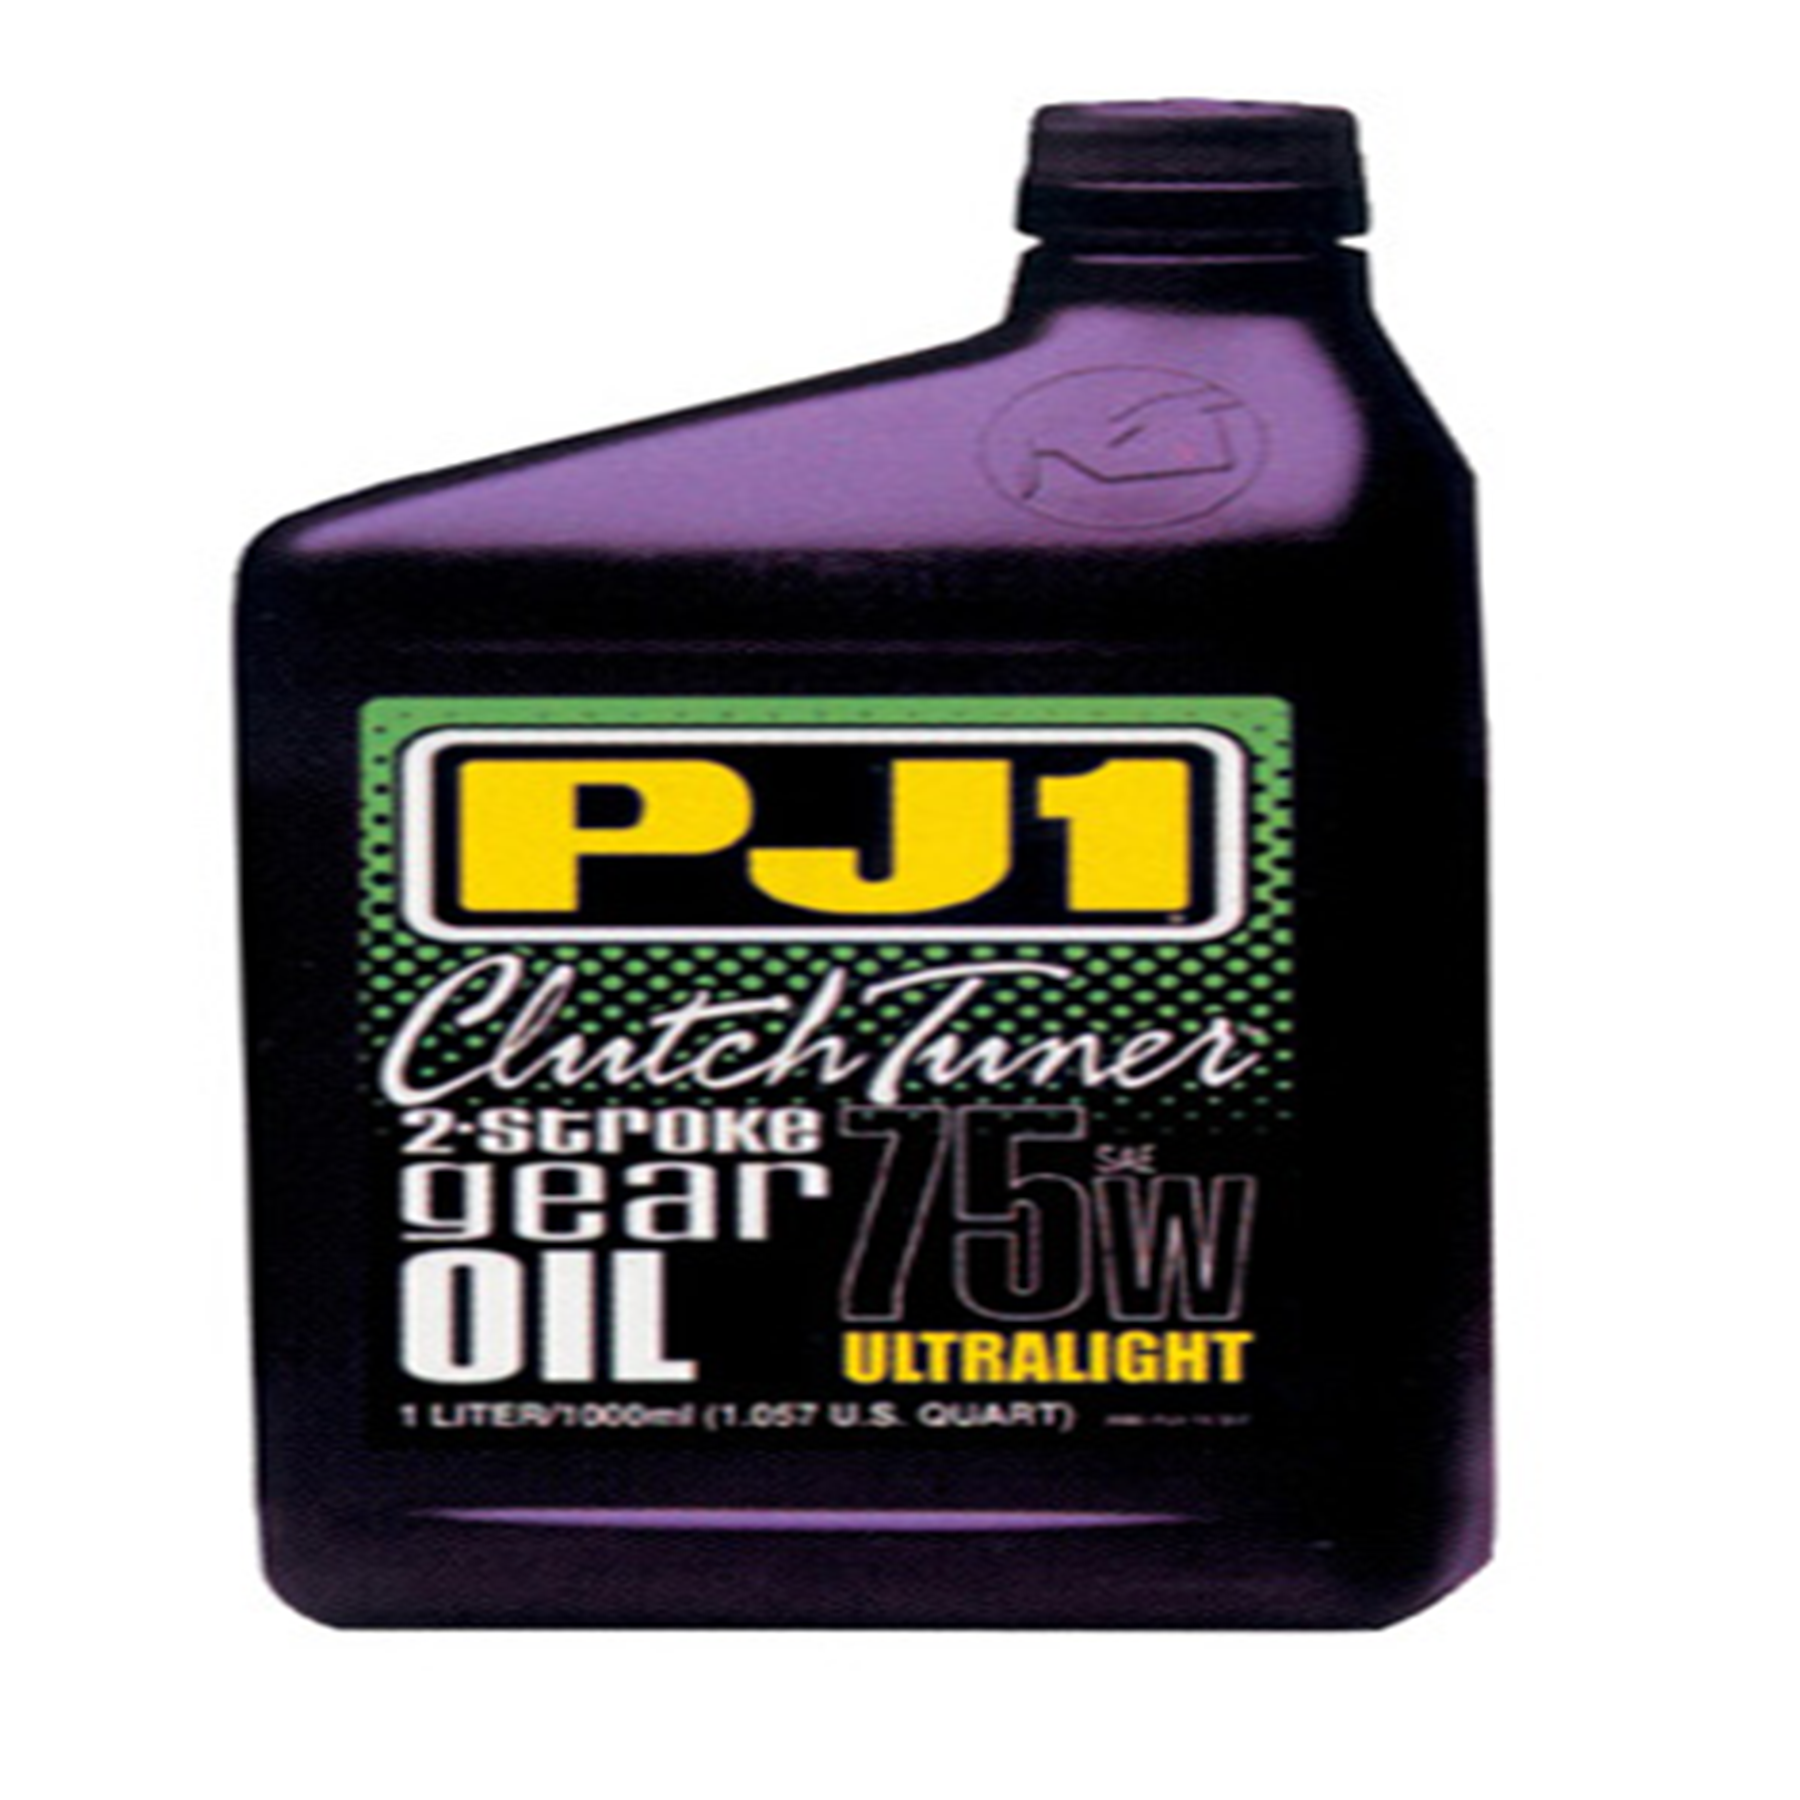 PJ1 CLUTCH TUNER 2T 75W GEAR OIL,1 LITER